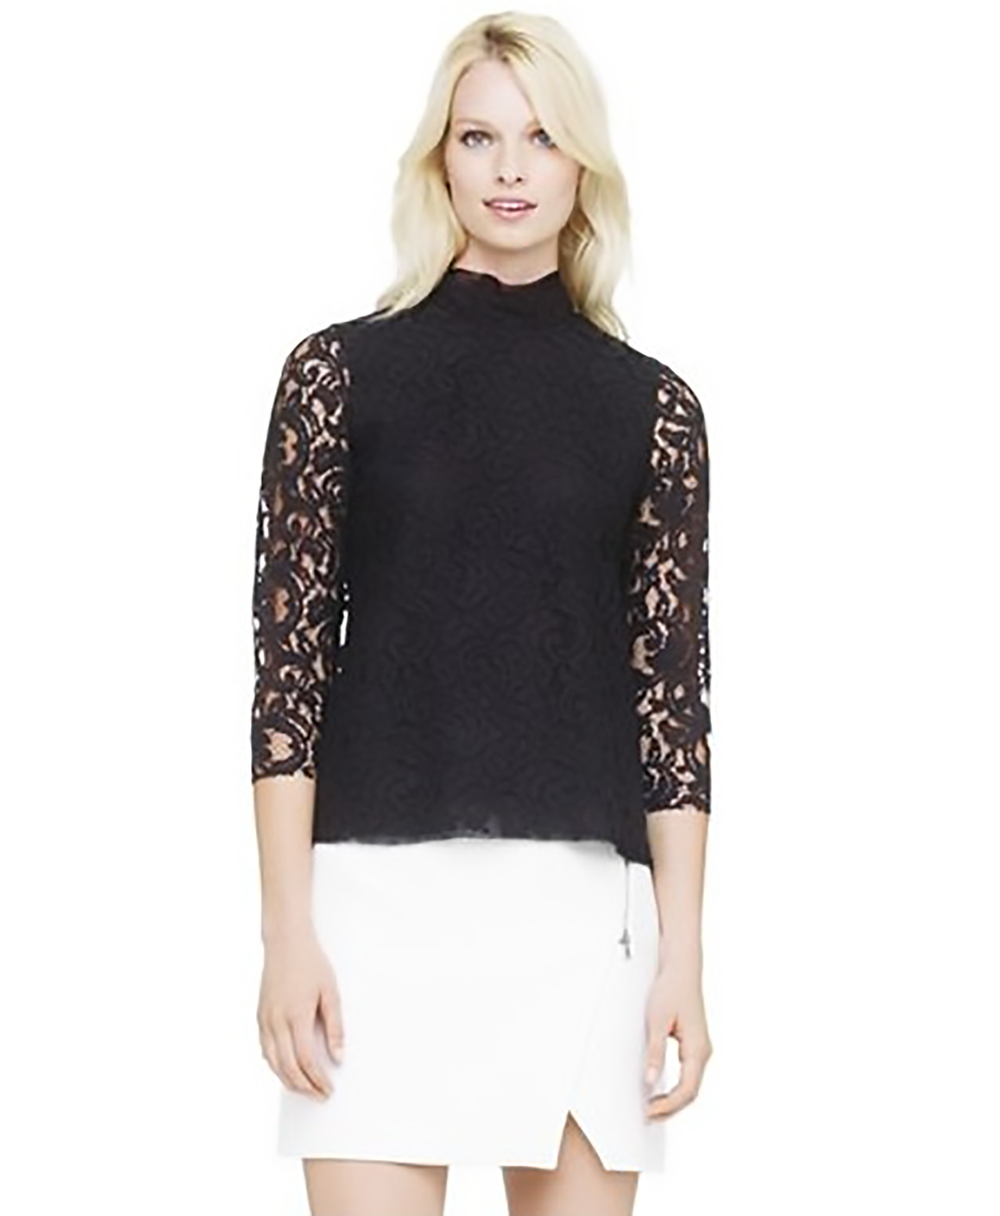 club monaco martine mock neck lace top holiday separates 1500.jpg